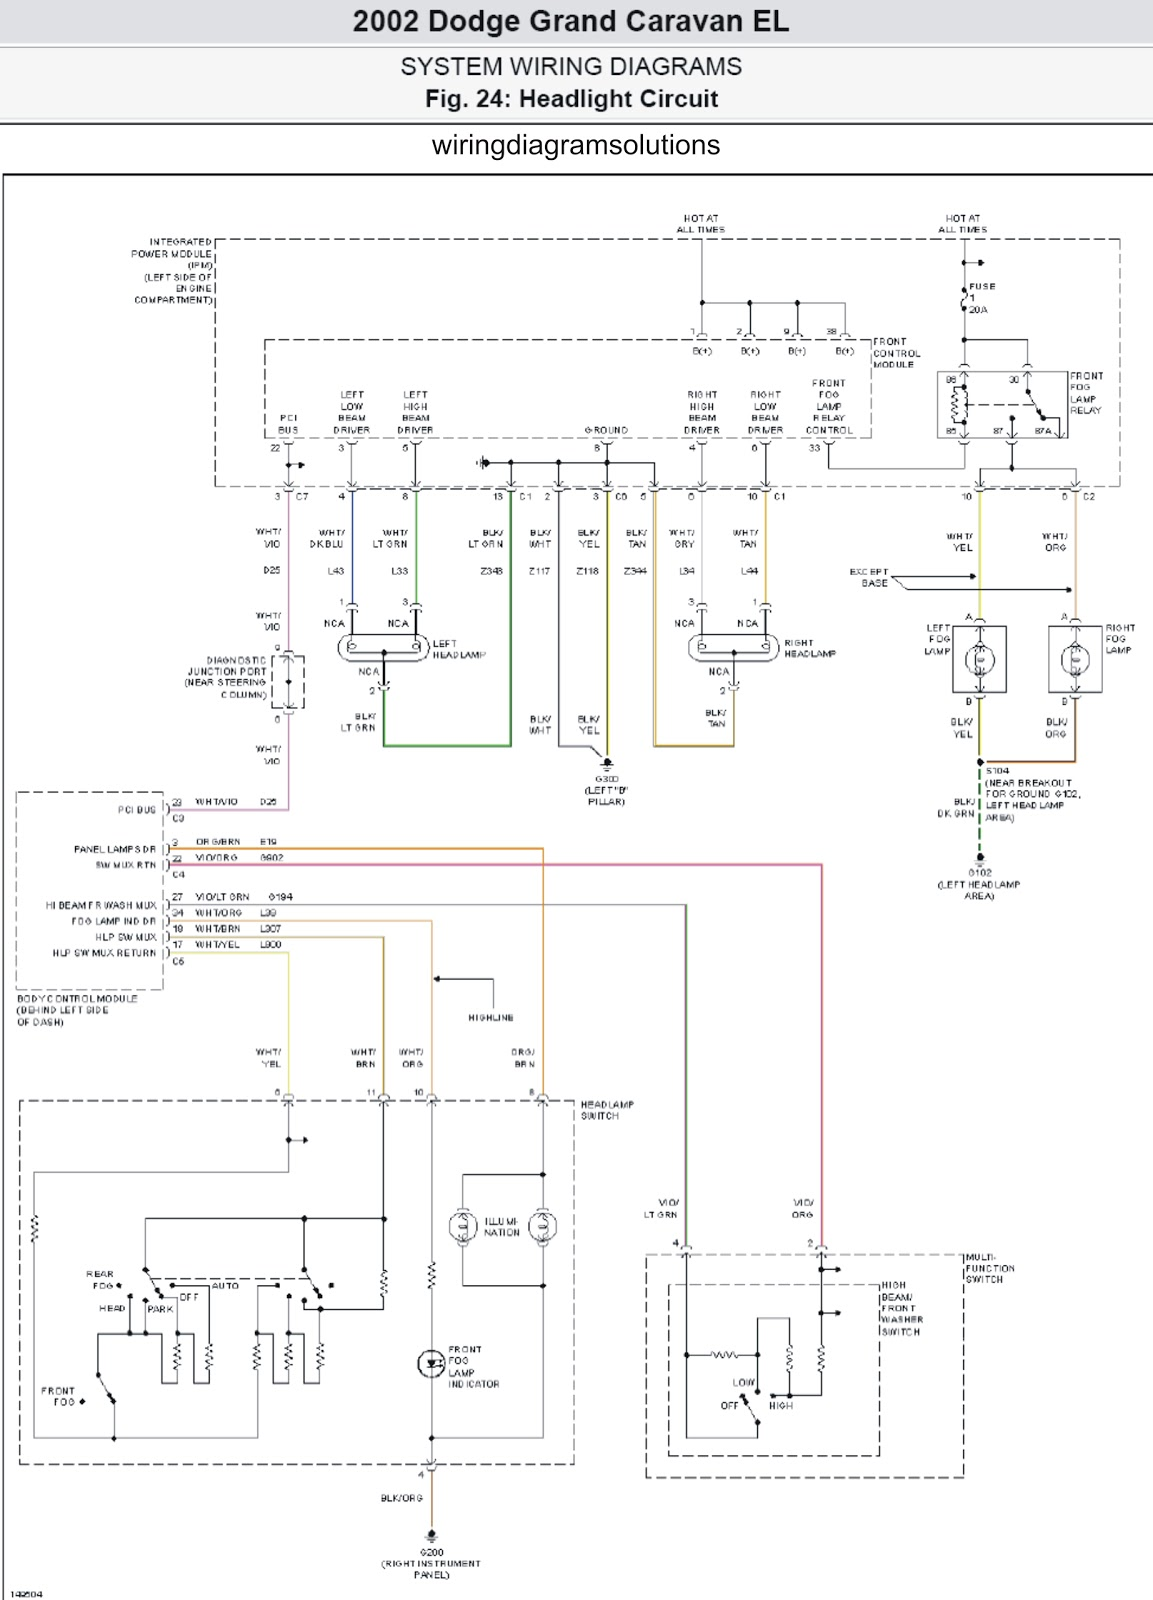 2002+dodge+caravan+Headlight+Circuit caravan zig unit wiring diagram caravan free wiring diagrams lunar caravan wiring diagram at reclaimingppi.co